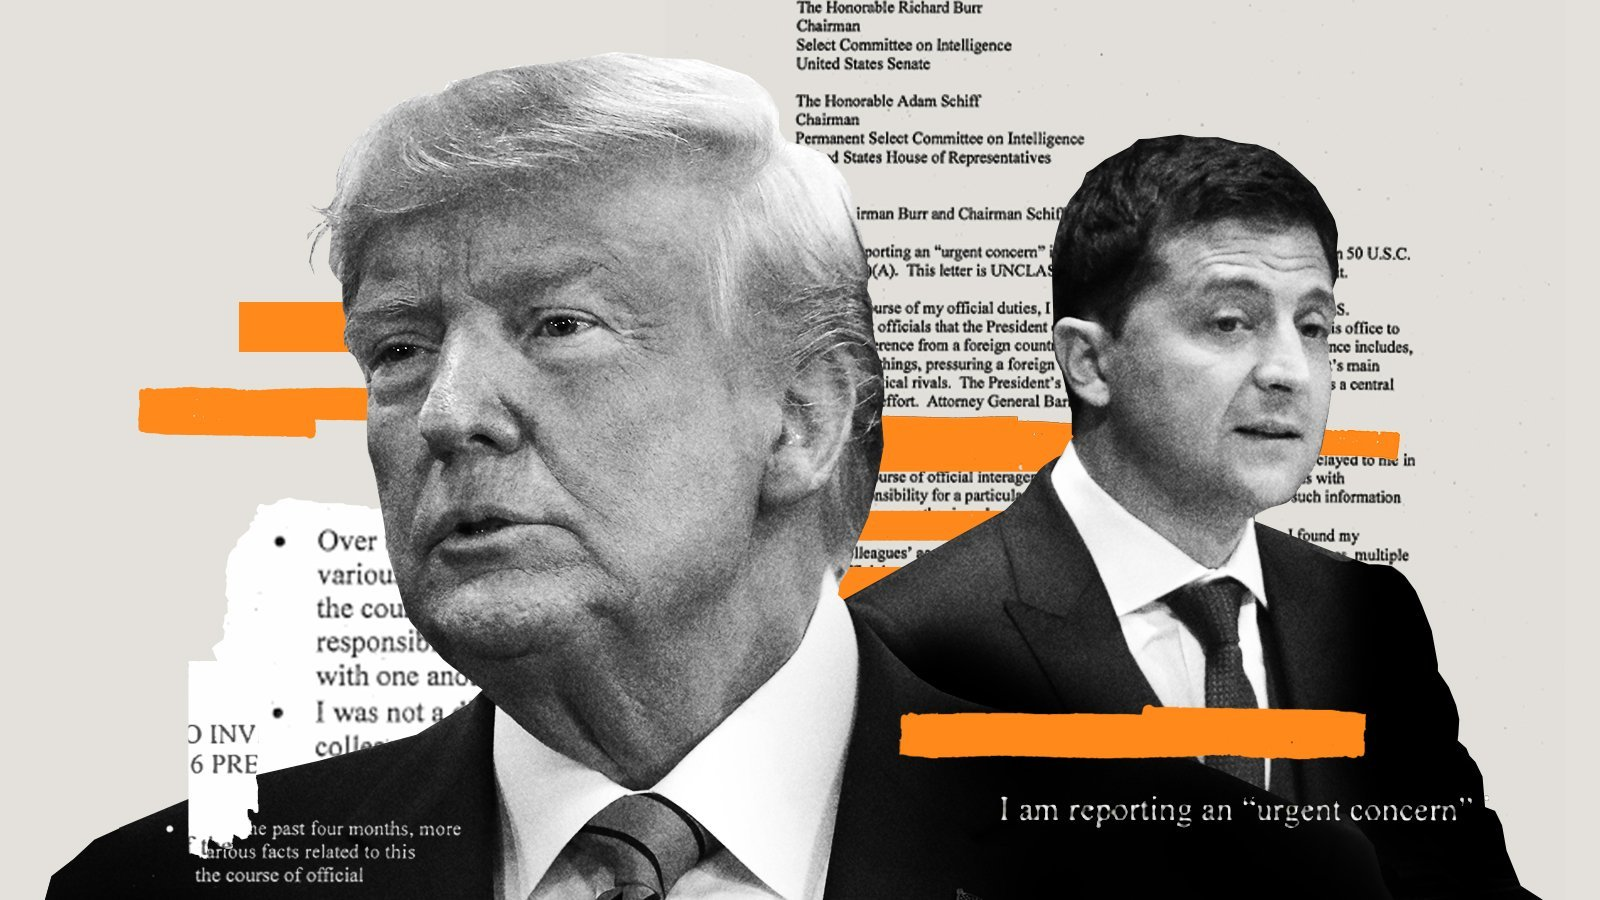 Quick timeline of Trump-Ukraine events that led to impeachment hearings